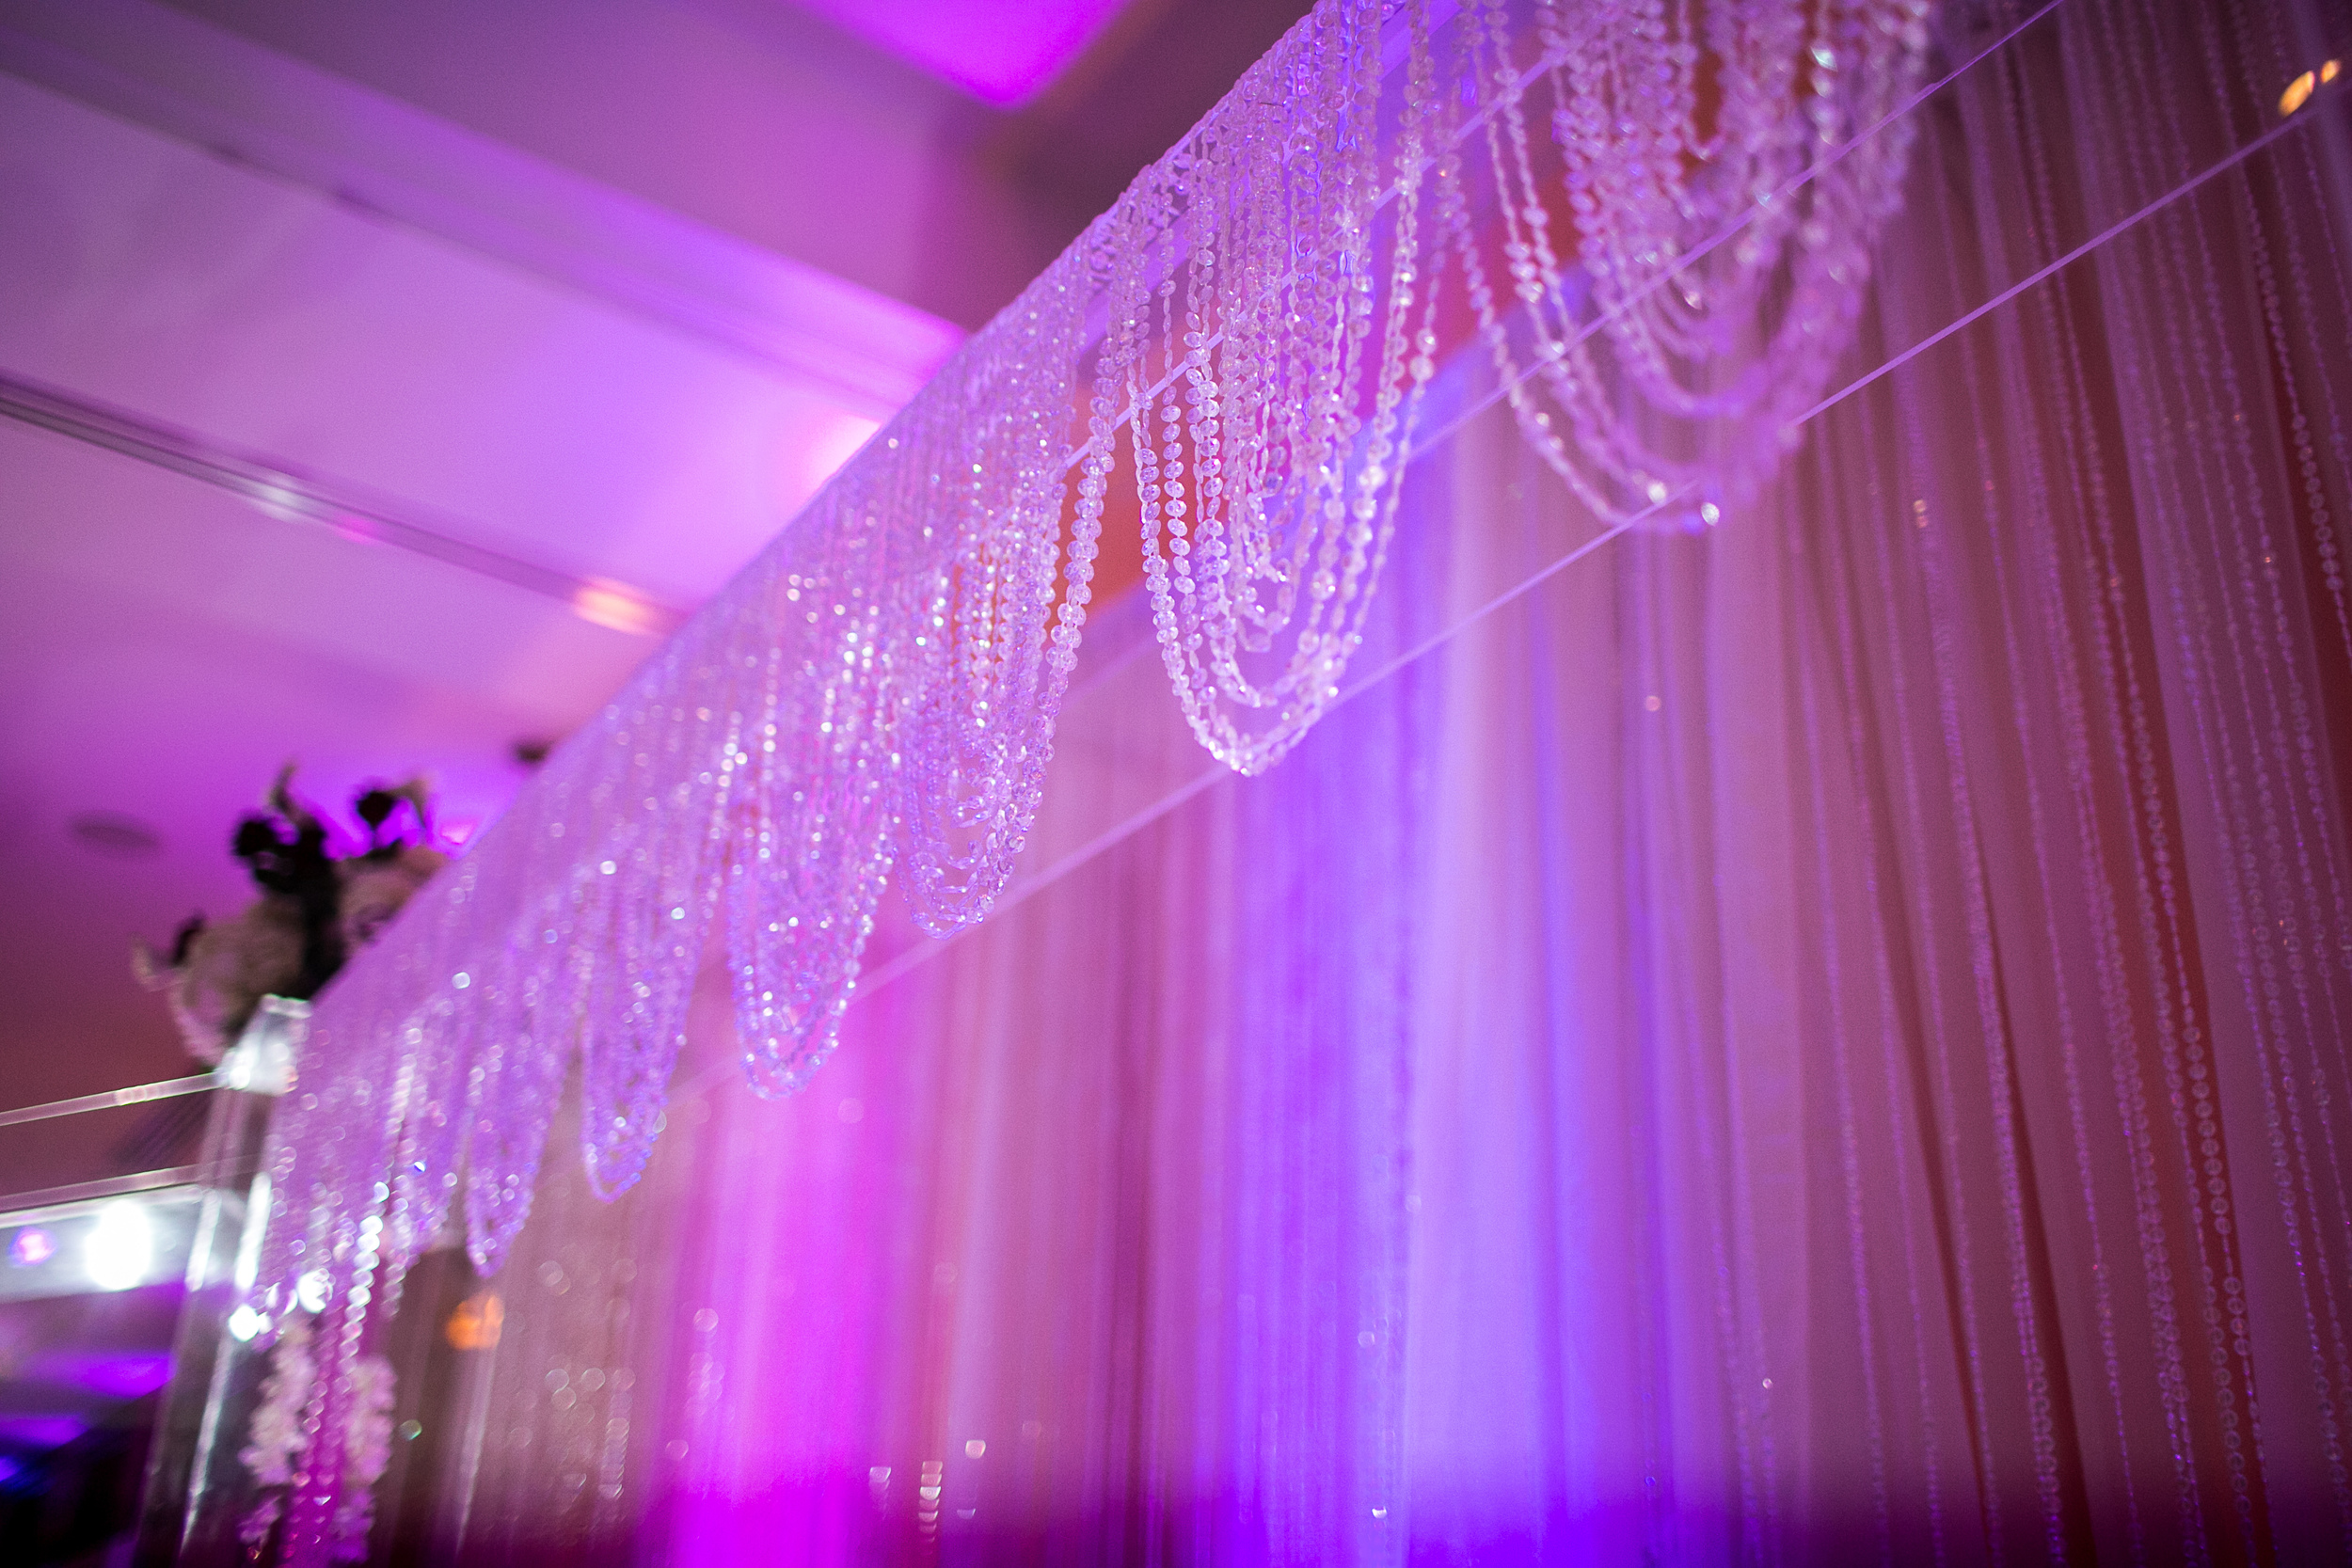 Imperial Decorations - Indian Wedding Backdrop Decorations.jpg